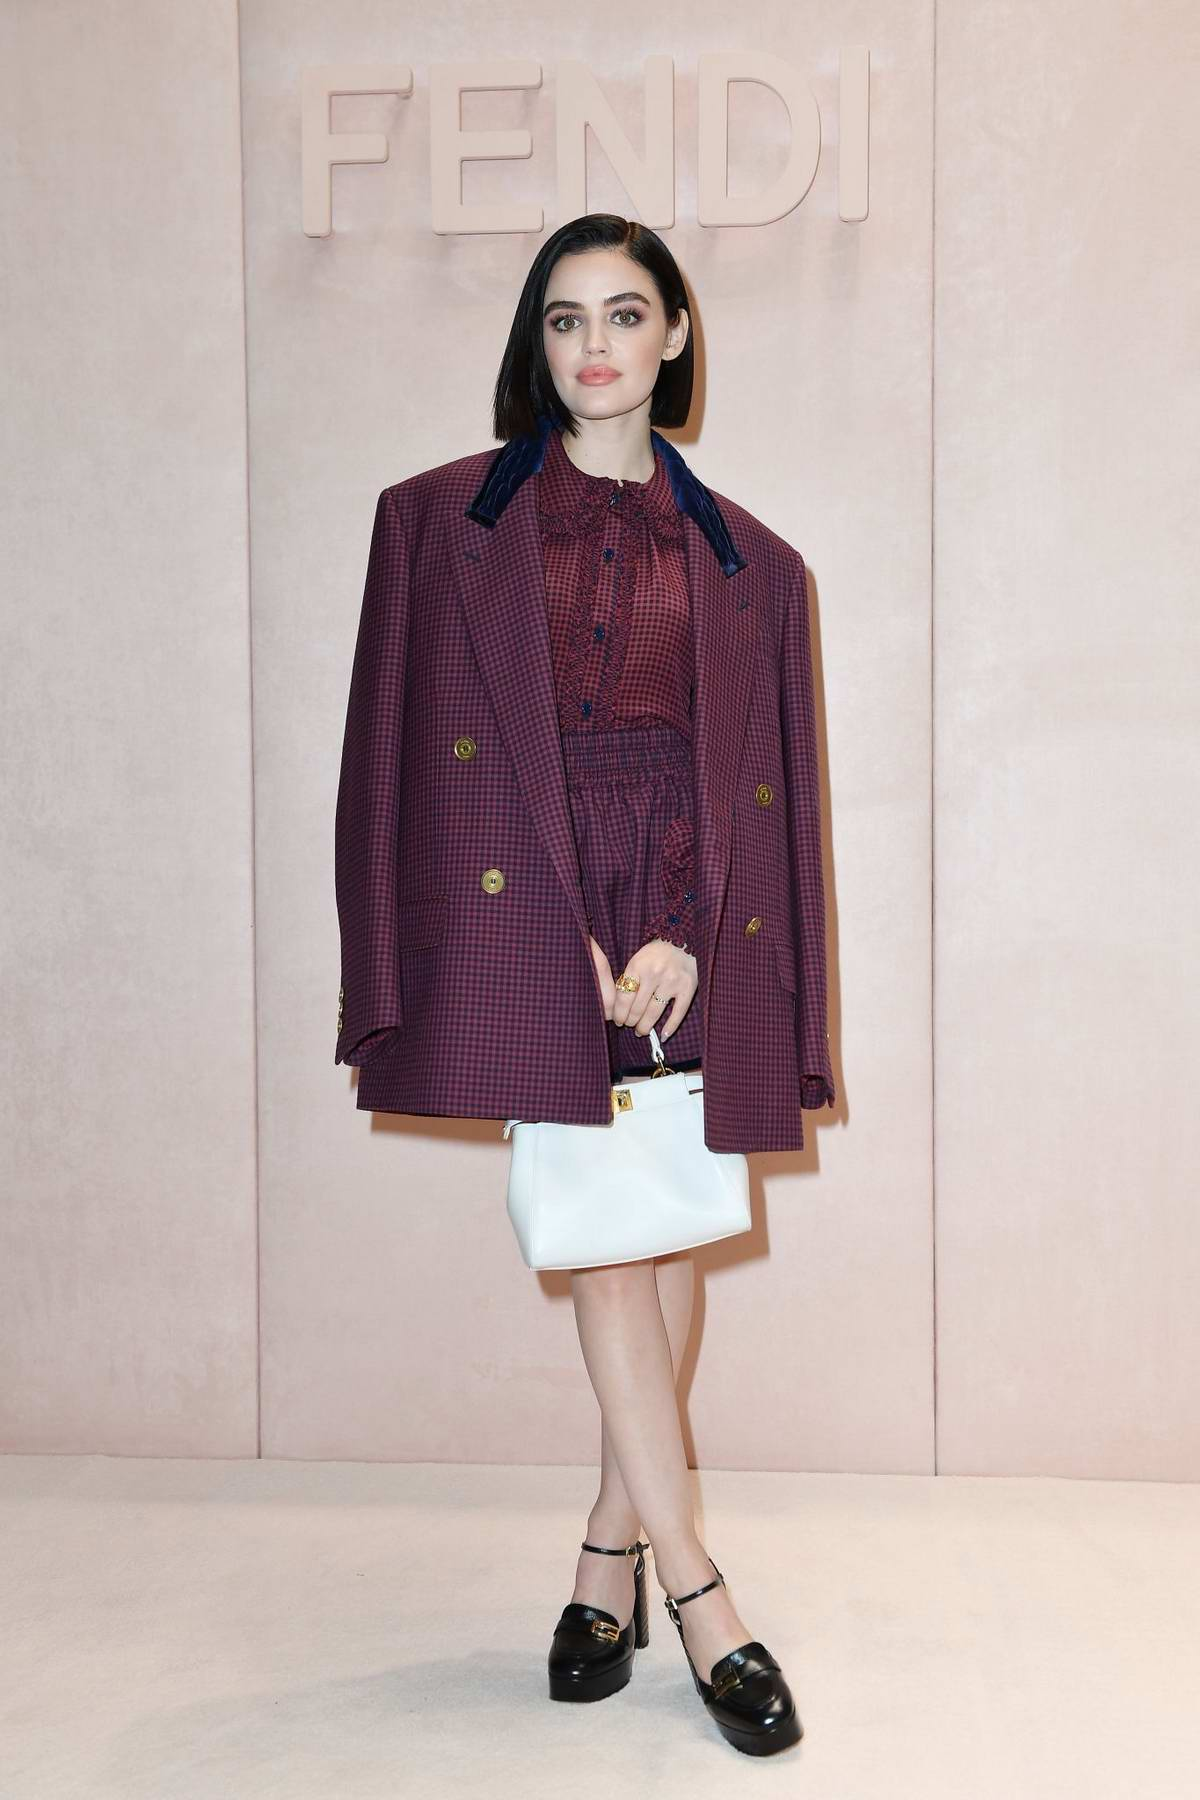 Lucy Hale attends the Fendi fashion show, F/W 2020 during Milan Fashion Week in Milan, Italy